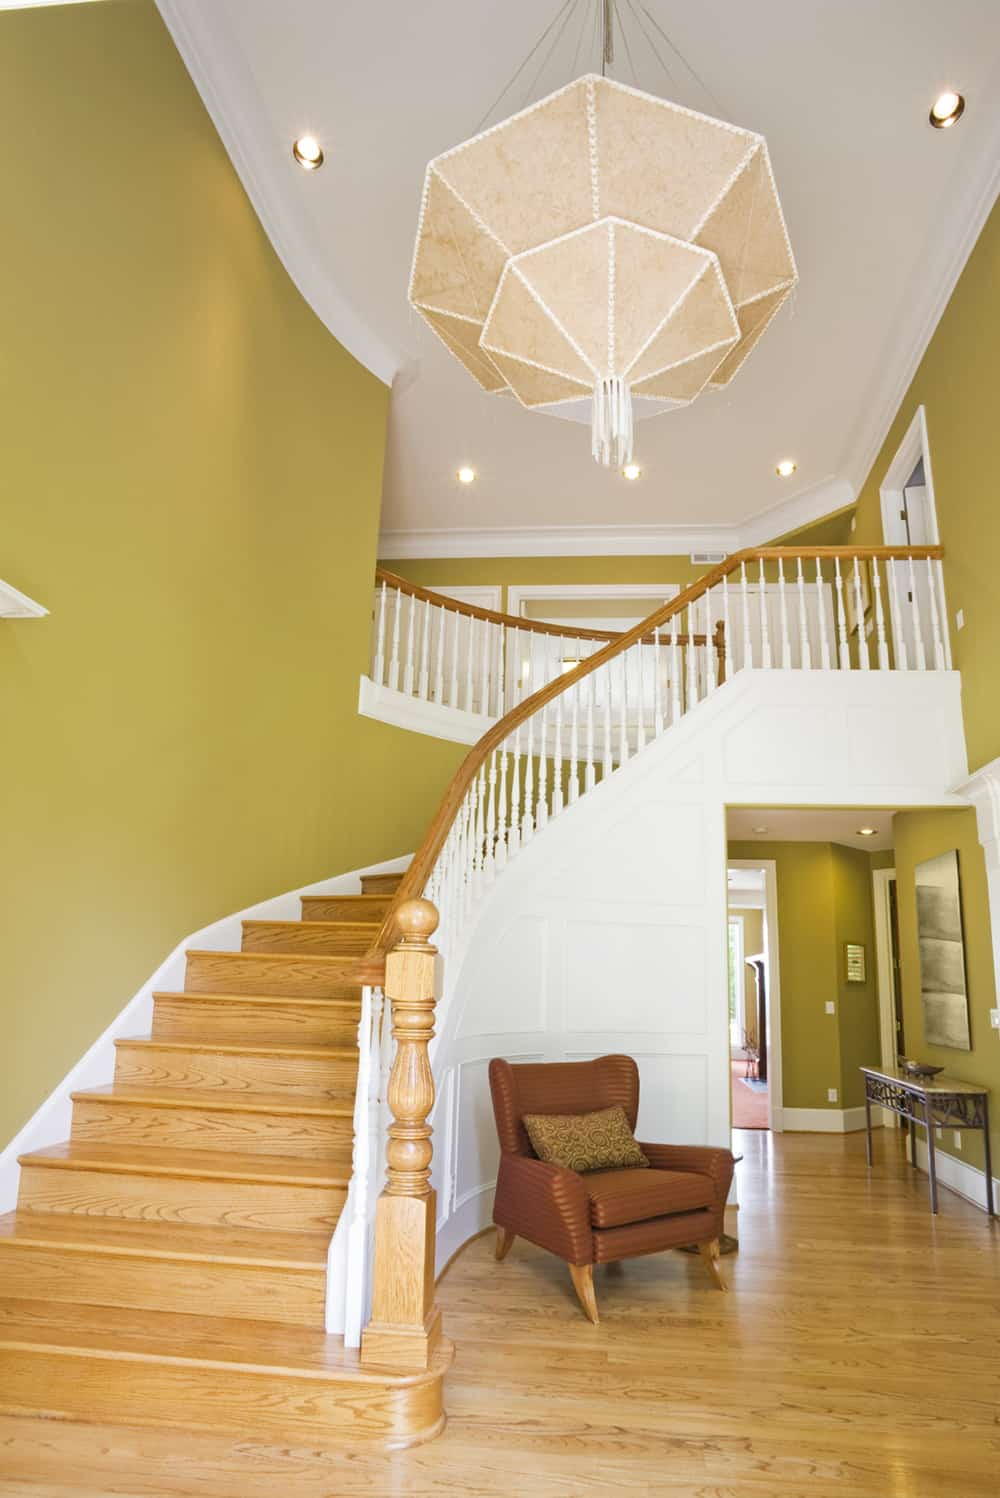 At the top of this soaring foyer is a unique chandelier, which dominates the entire space. The curve of the stairs is bedecked in wainscoting.